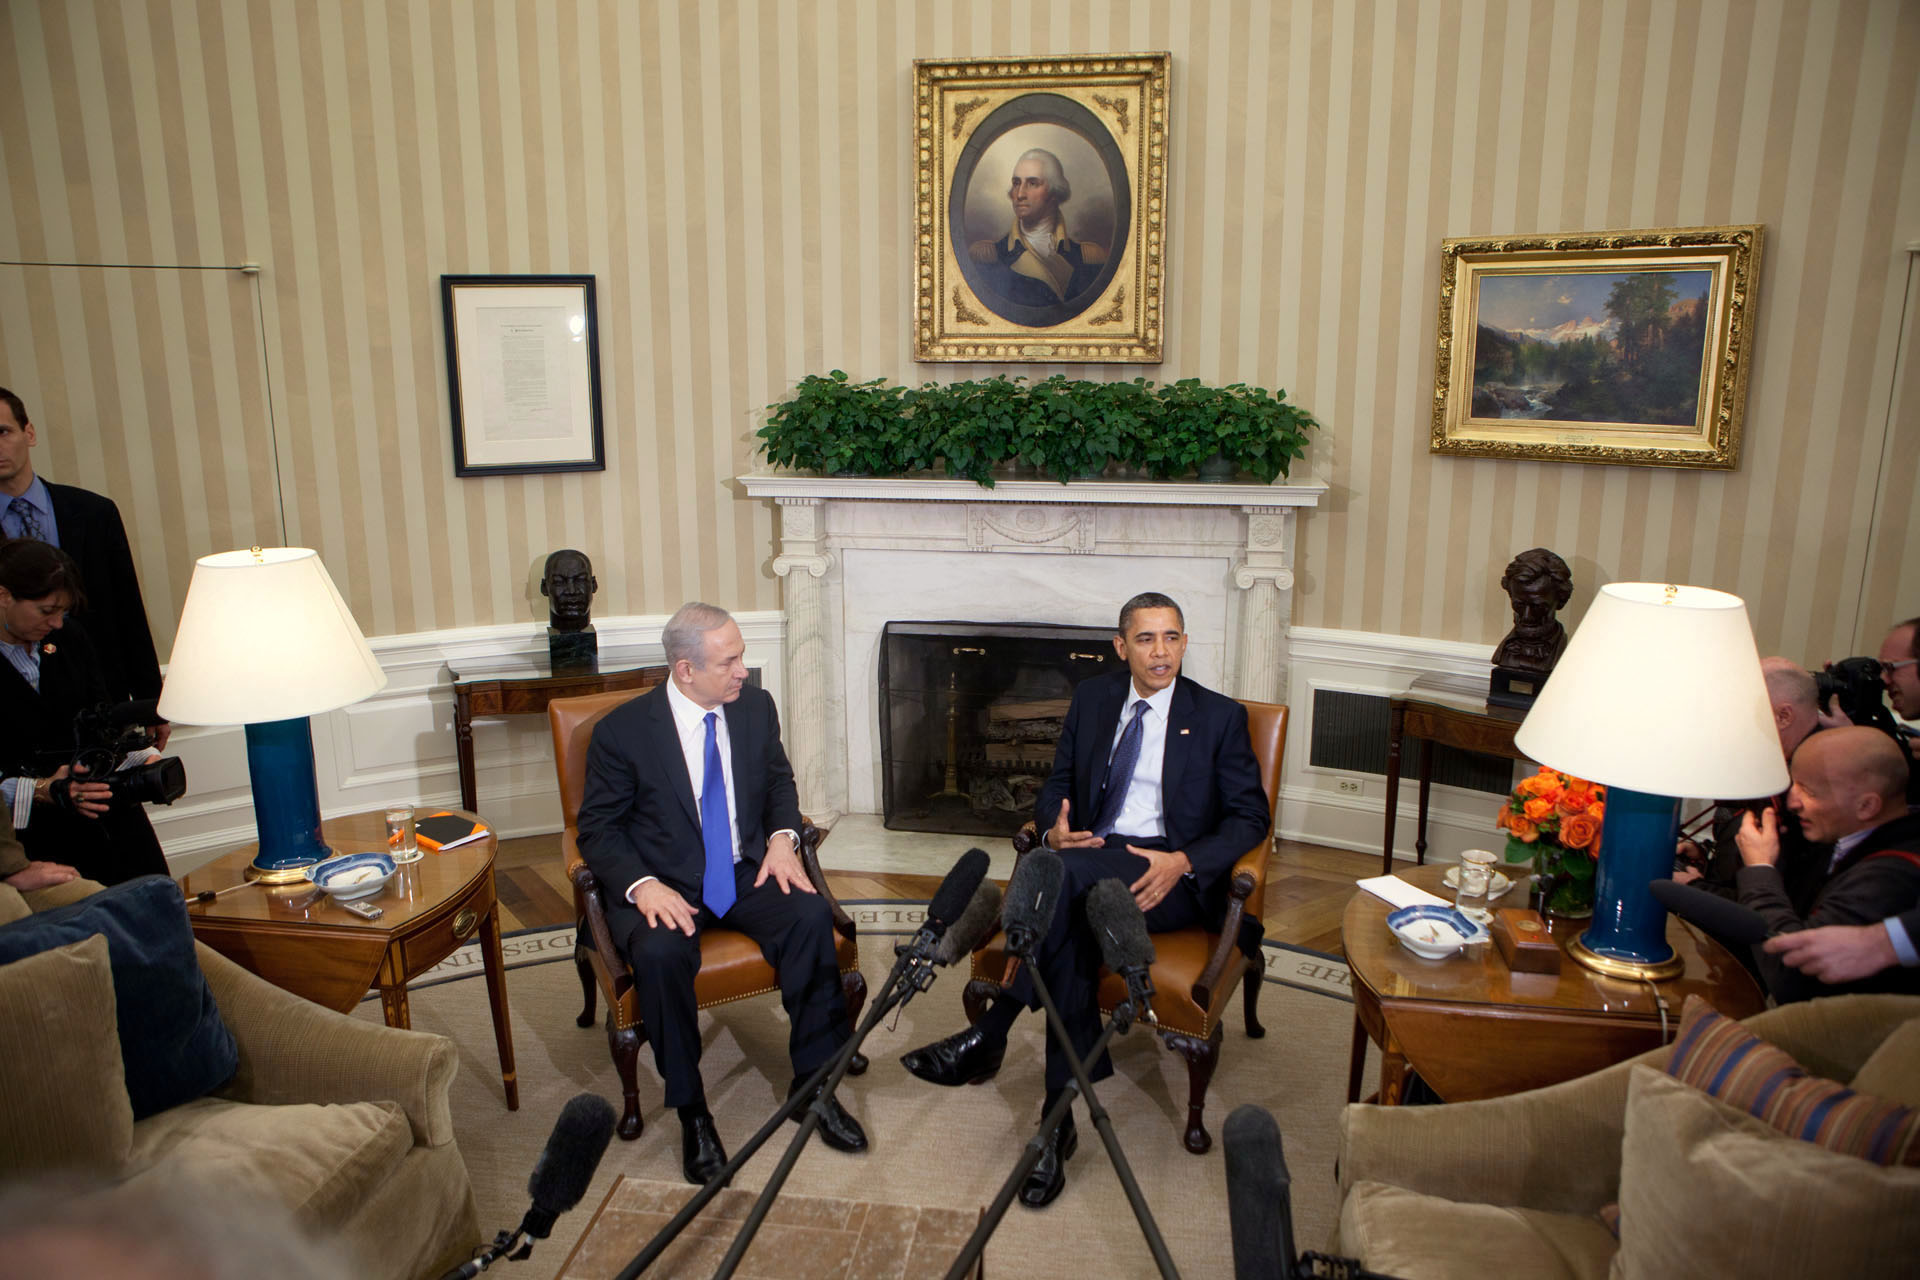 President Barack Obama and Prime Minister Benjamin Netanyahu of Israel (March 5, 2012)